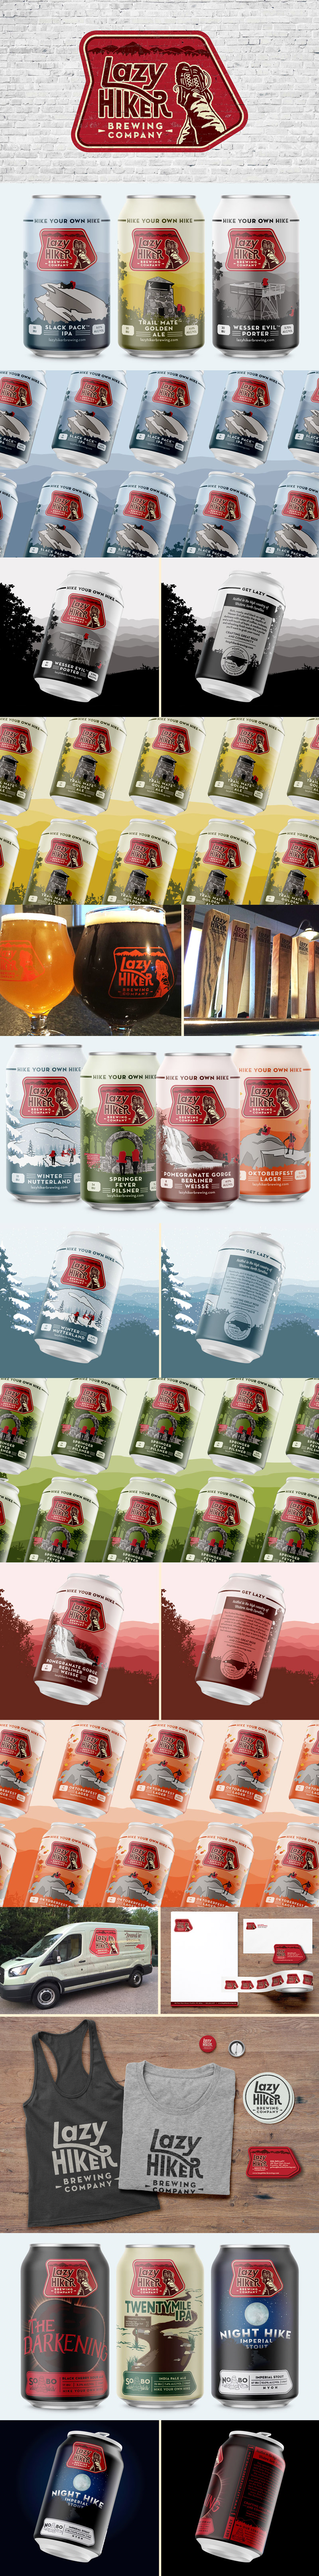 Lazy Hiker Brewing company branding and packaging design by Riddle Design Co. in Richmond, Virginia